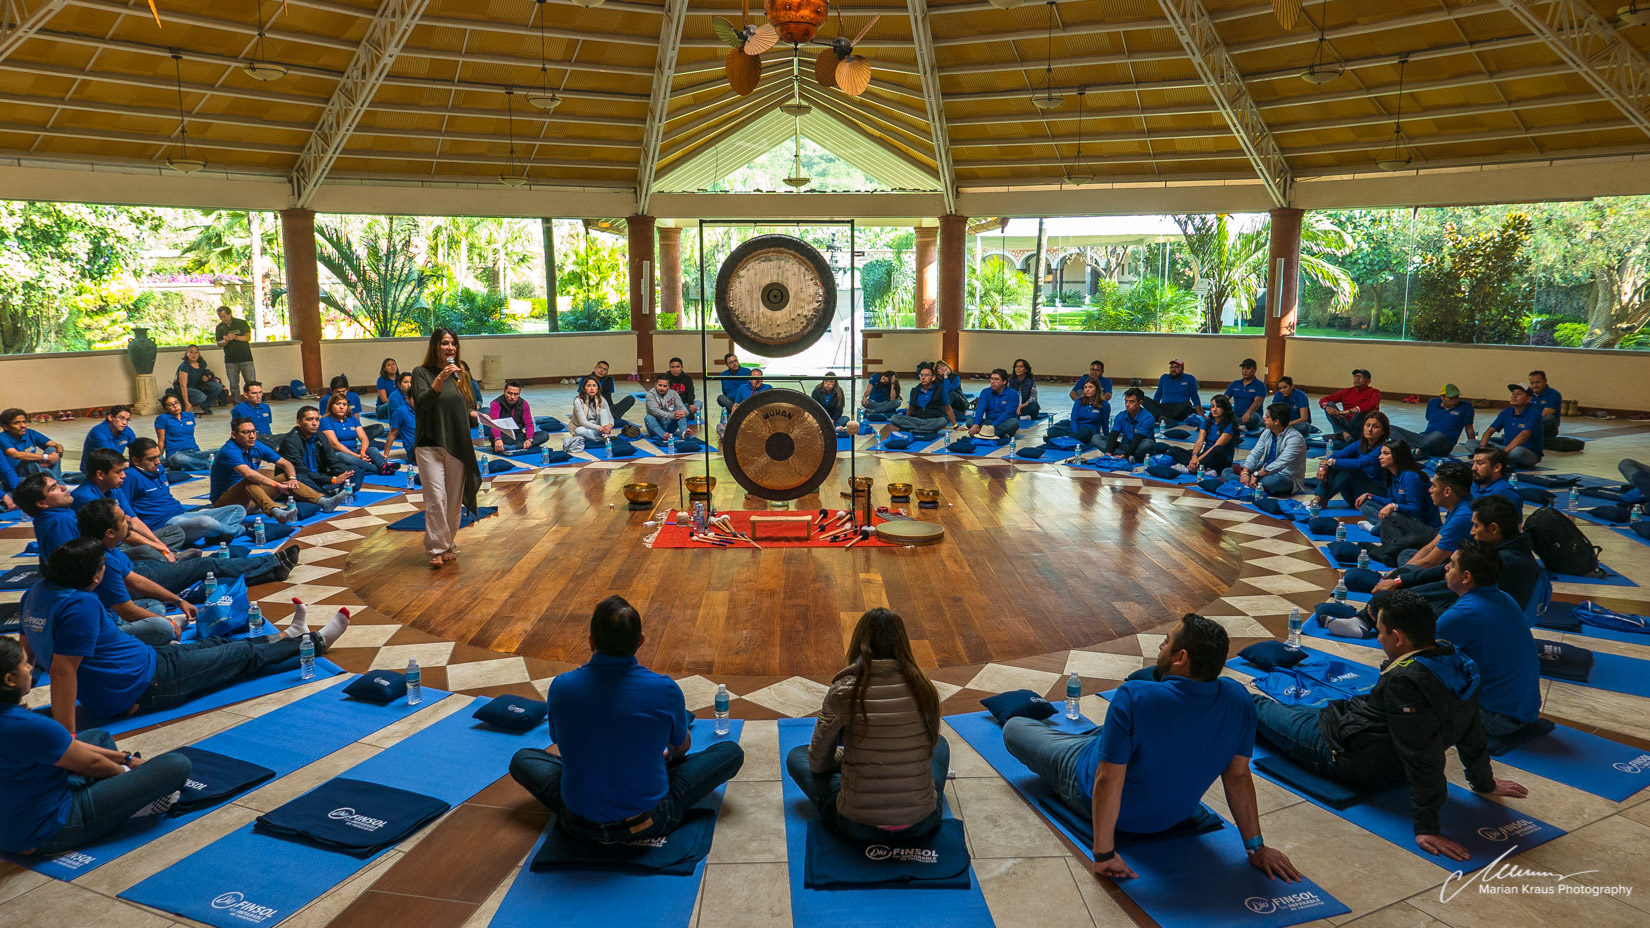 Corporate stress reduction workshop by Delamora Sound and Evolution, with Finsol employees at Hostal de la Luz in Tepoztlan, Mexico